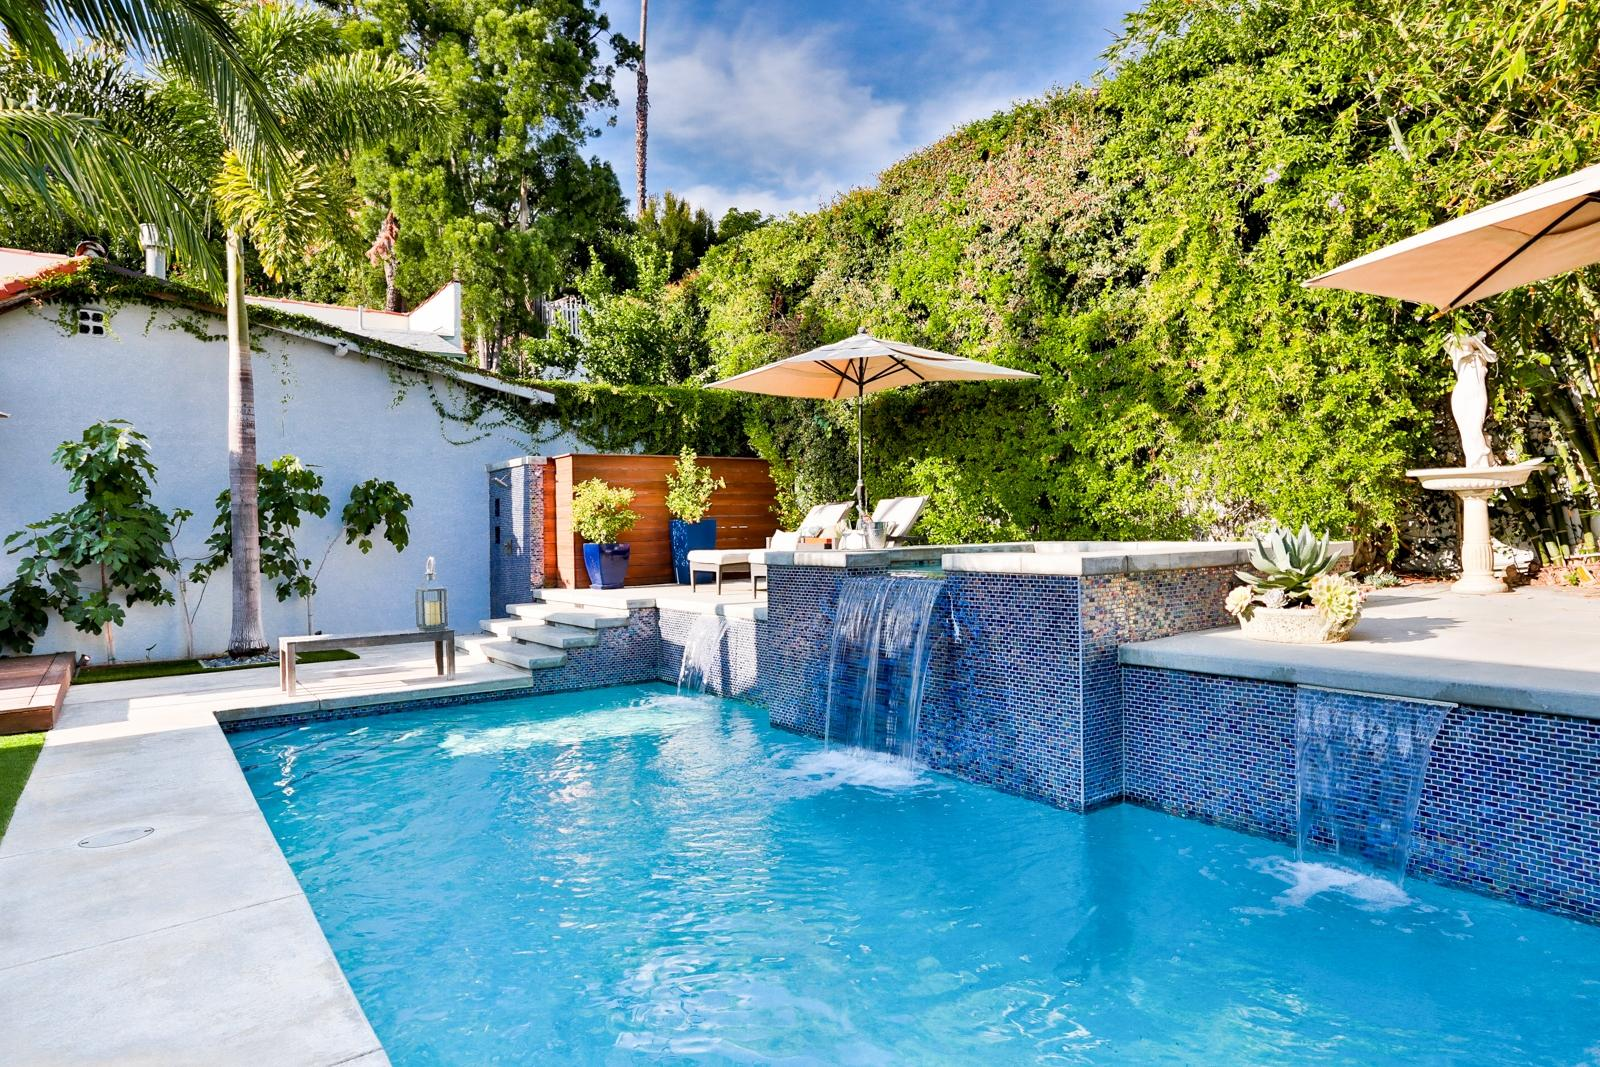 villas for rent in West Hollywood